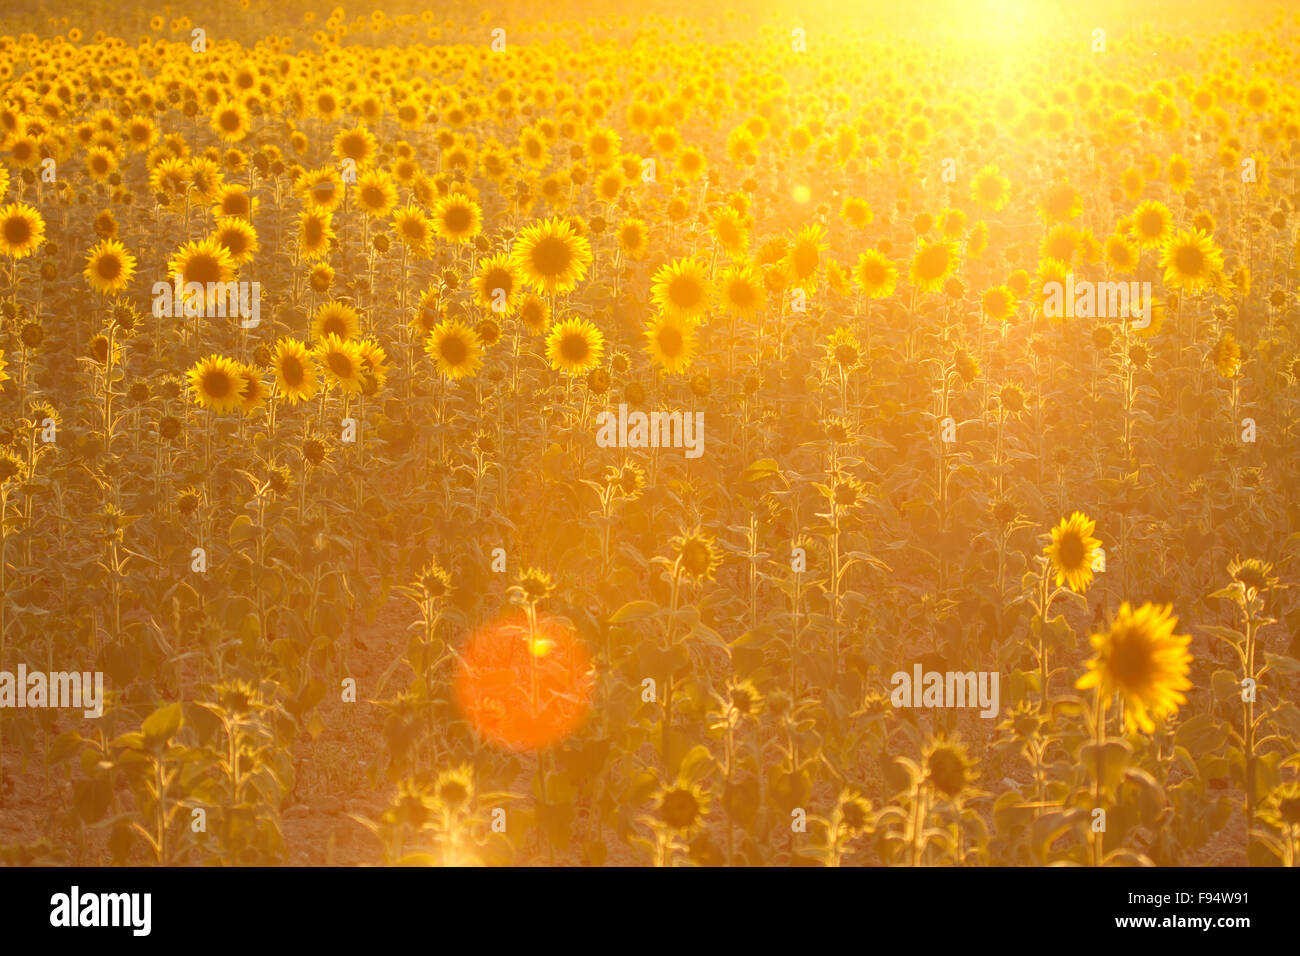 Golden sunflowers field with light effect - Stock Image